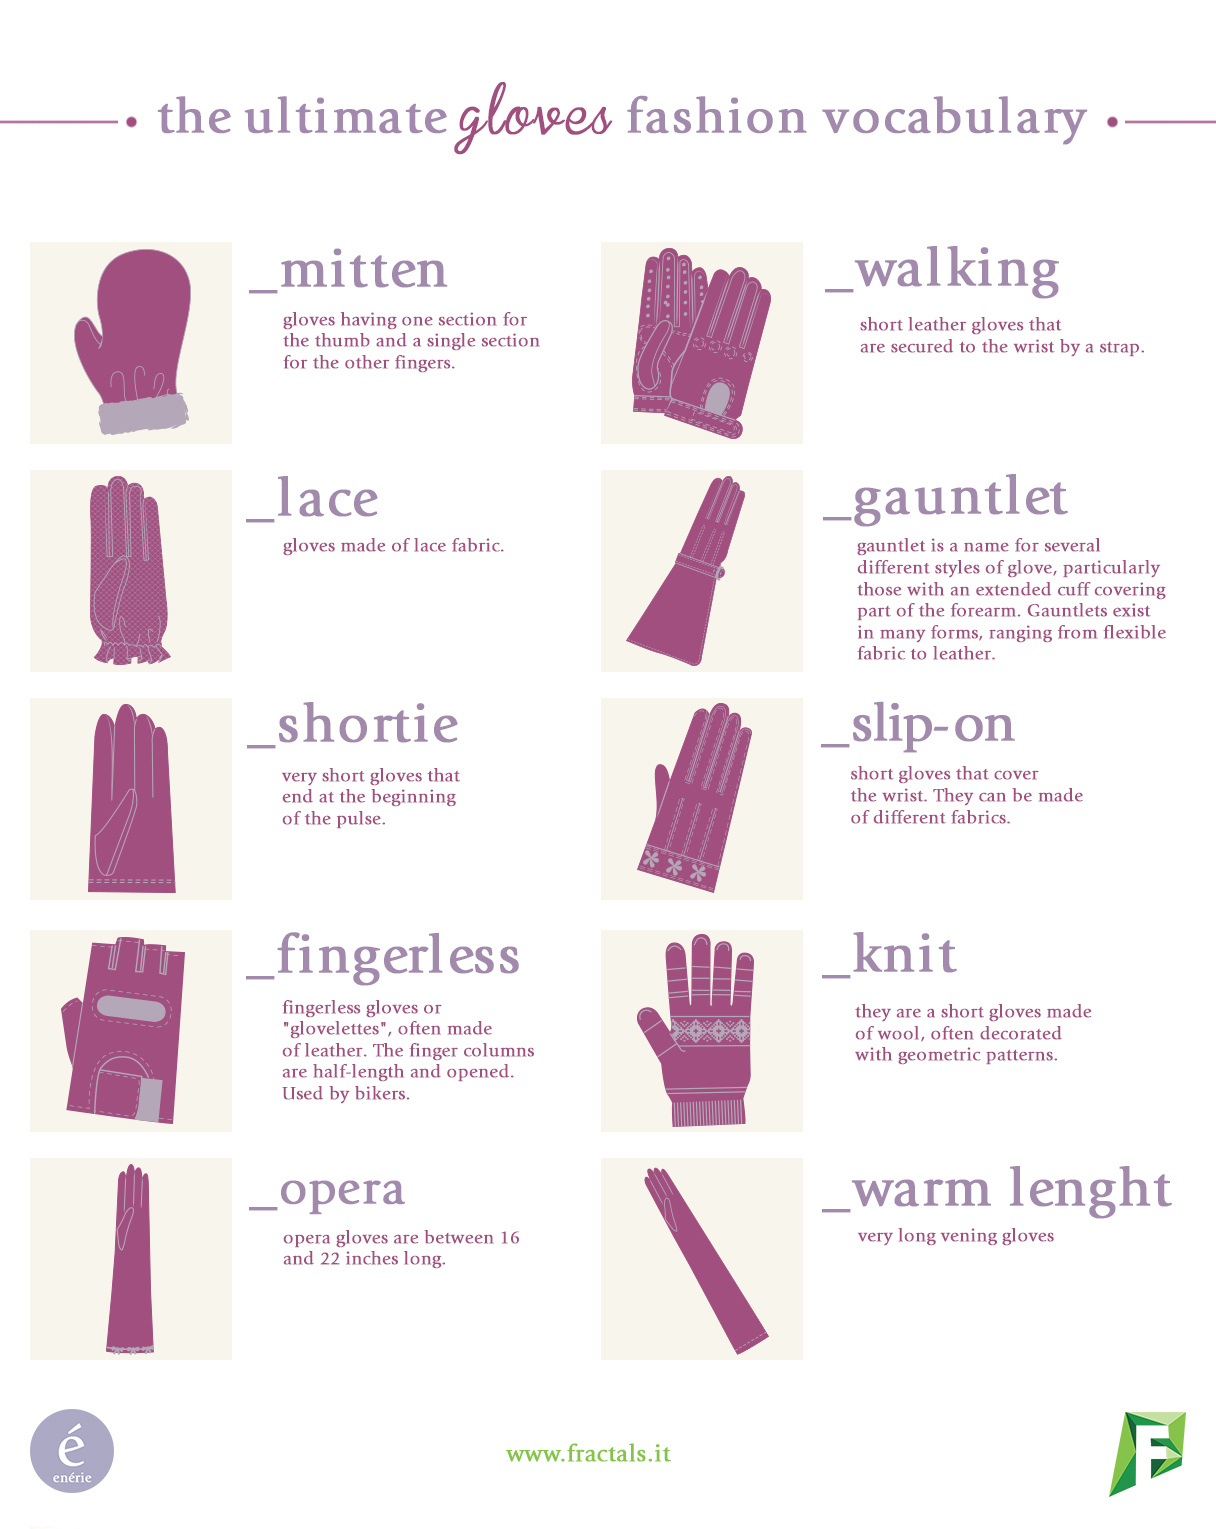 Fractals | The Ultimate Gloves Fashion Vocabulary